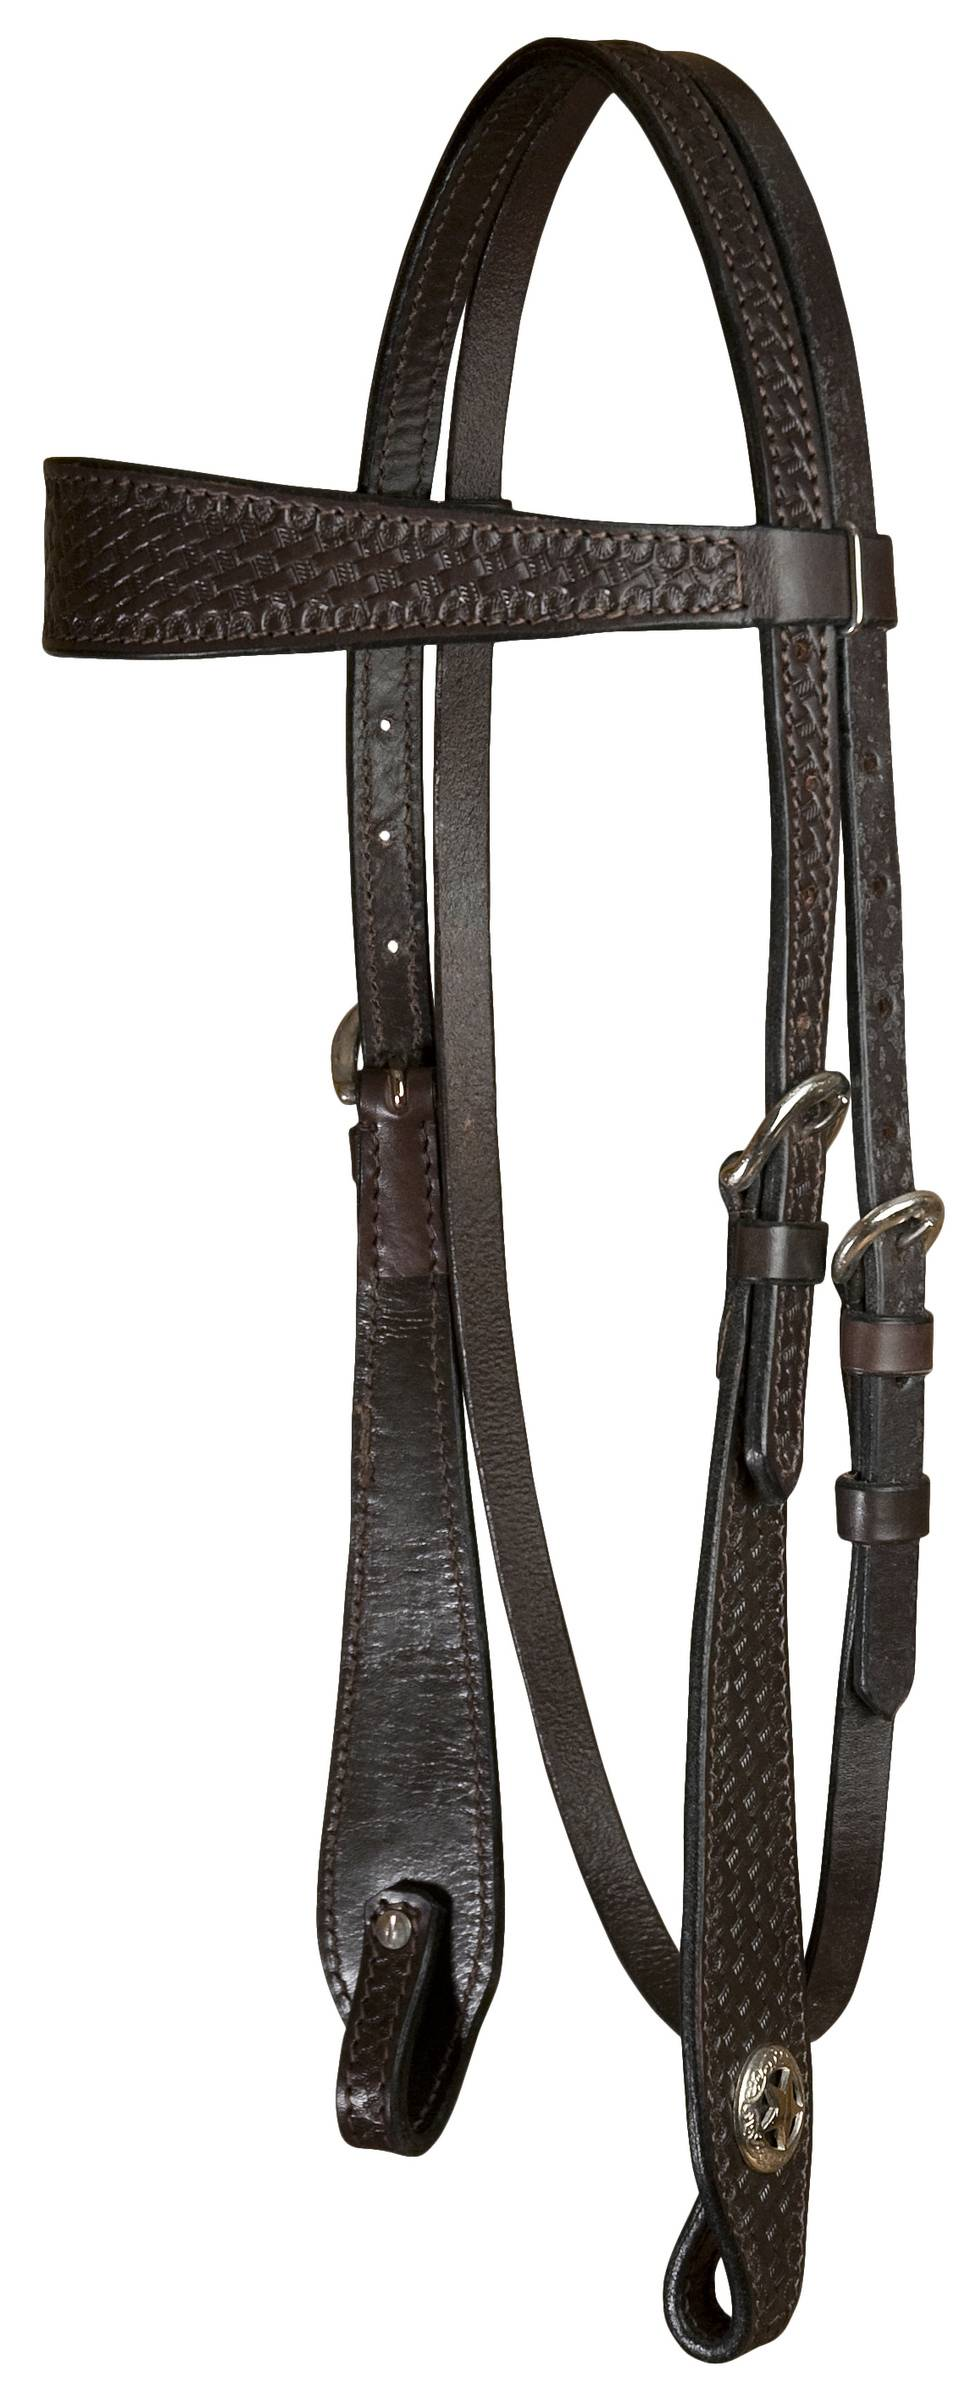 SEDONA Headstall Wide Brow - Light Oil